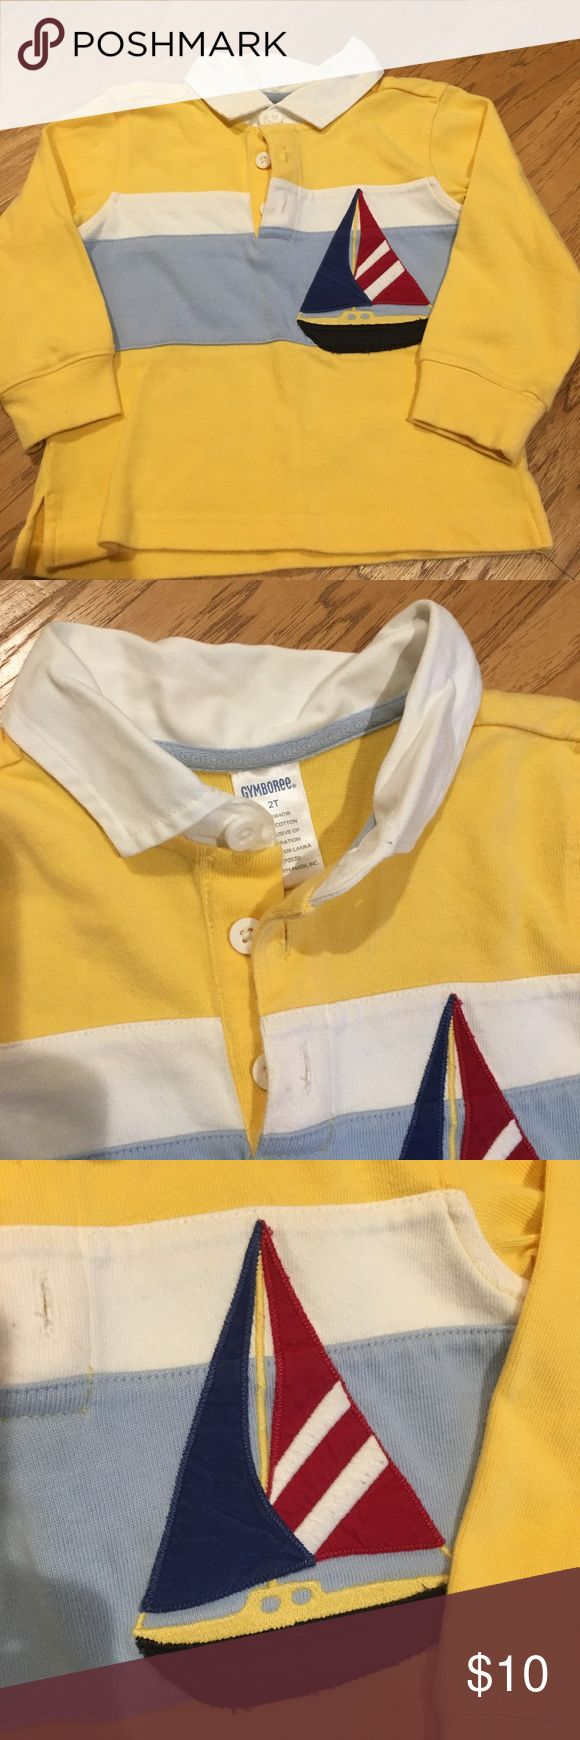 Gymboree sailboat shirt 2T like new!  ⛵️ Gymboree size 2T sailboat shirt. Excellent, like new shirt.  Please check out my closet for other listings for combined shipping!  Comes from a pet and smoke free home. Gymboree Shirts & Tops